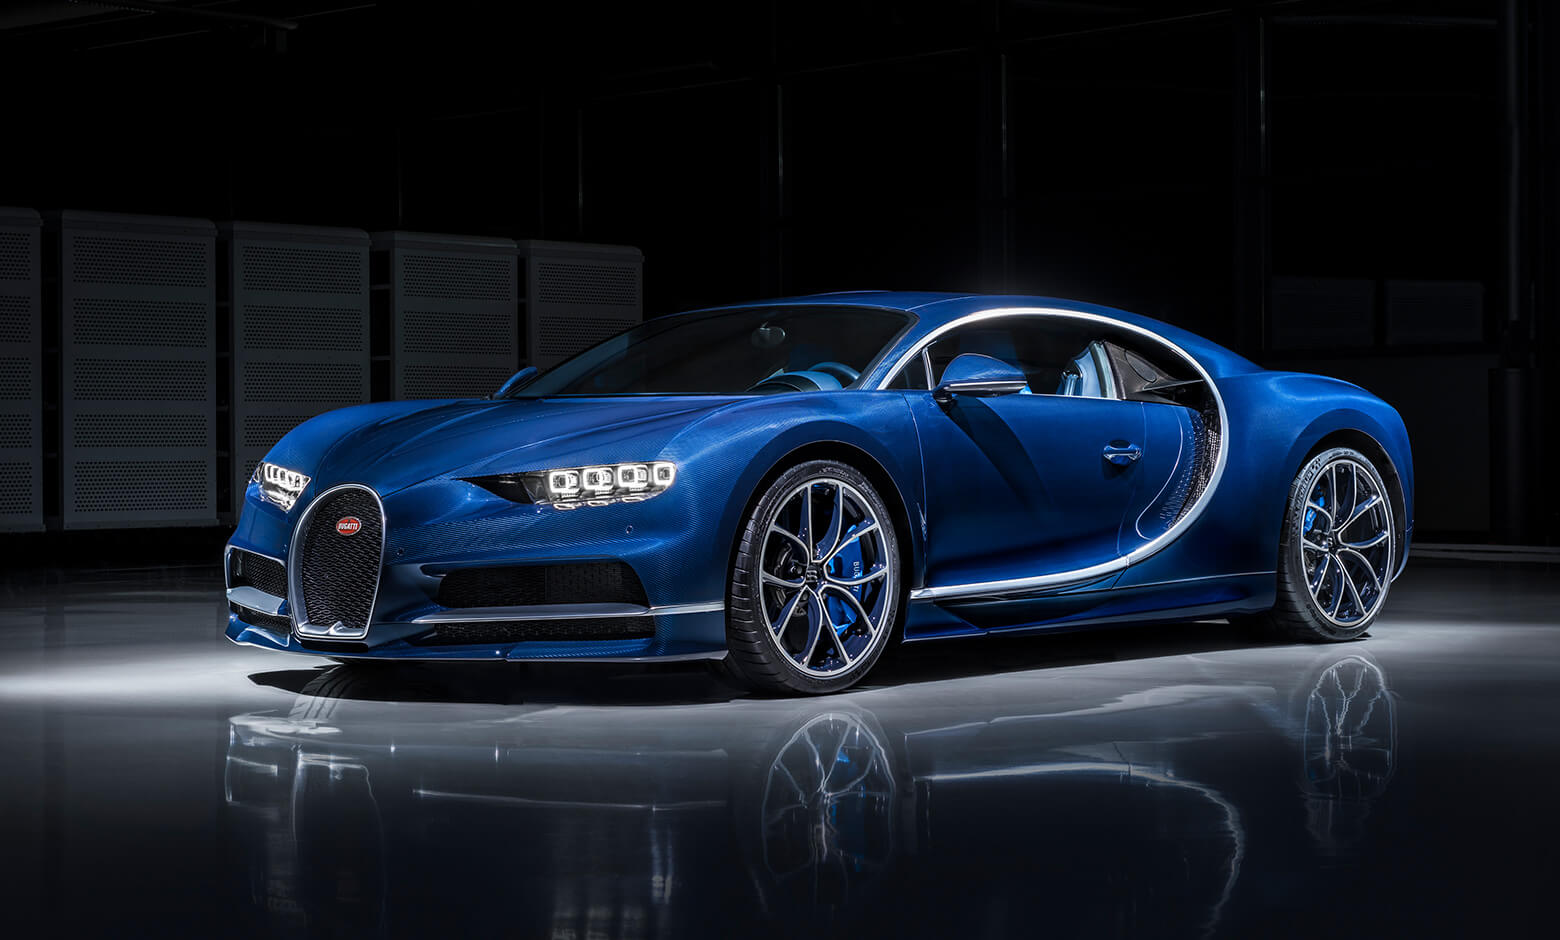 Passion For Luxury : 10 Most Expensive Cars In The World